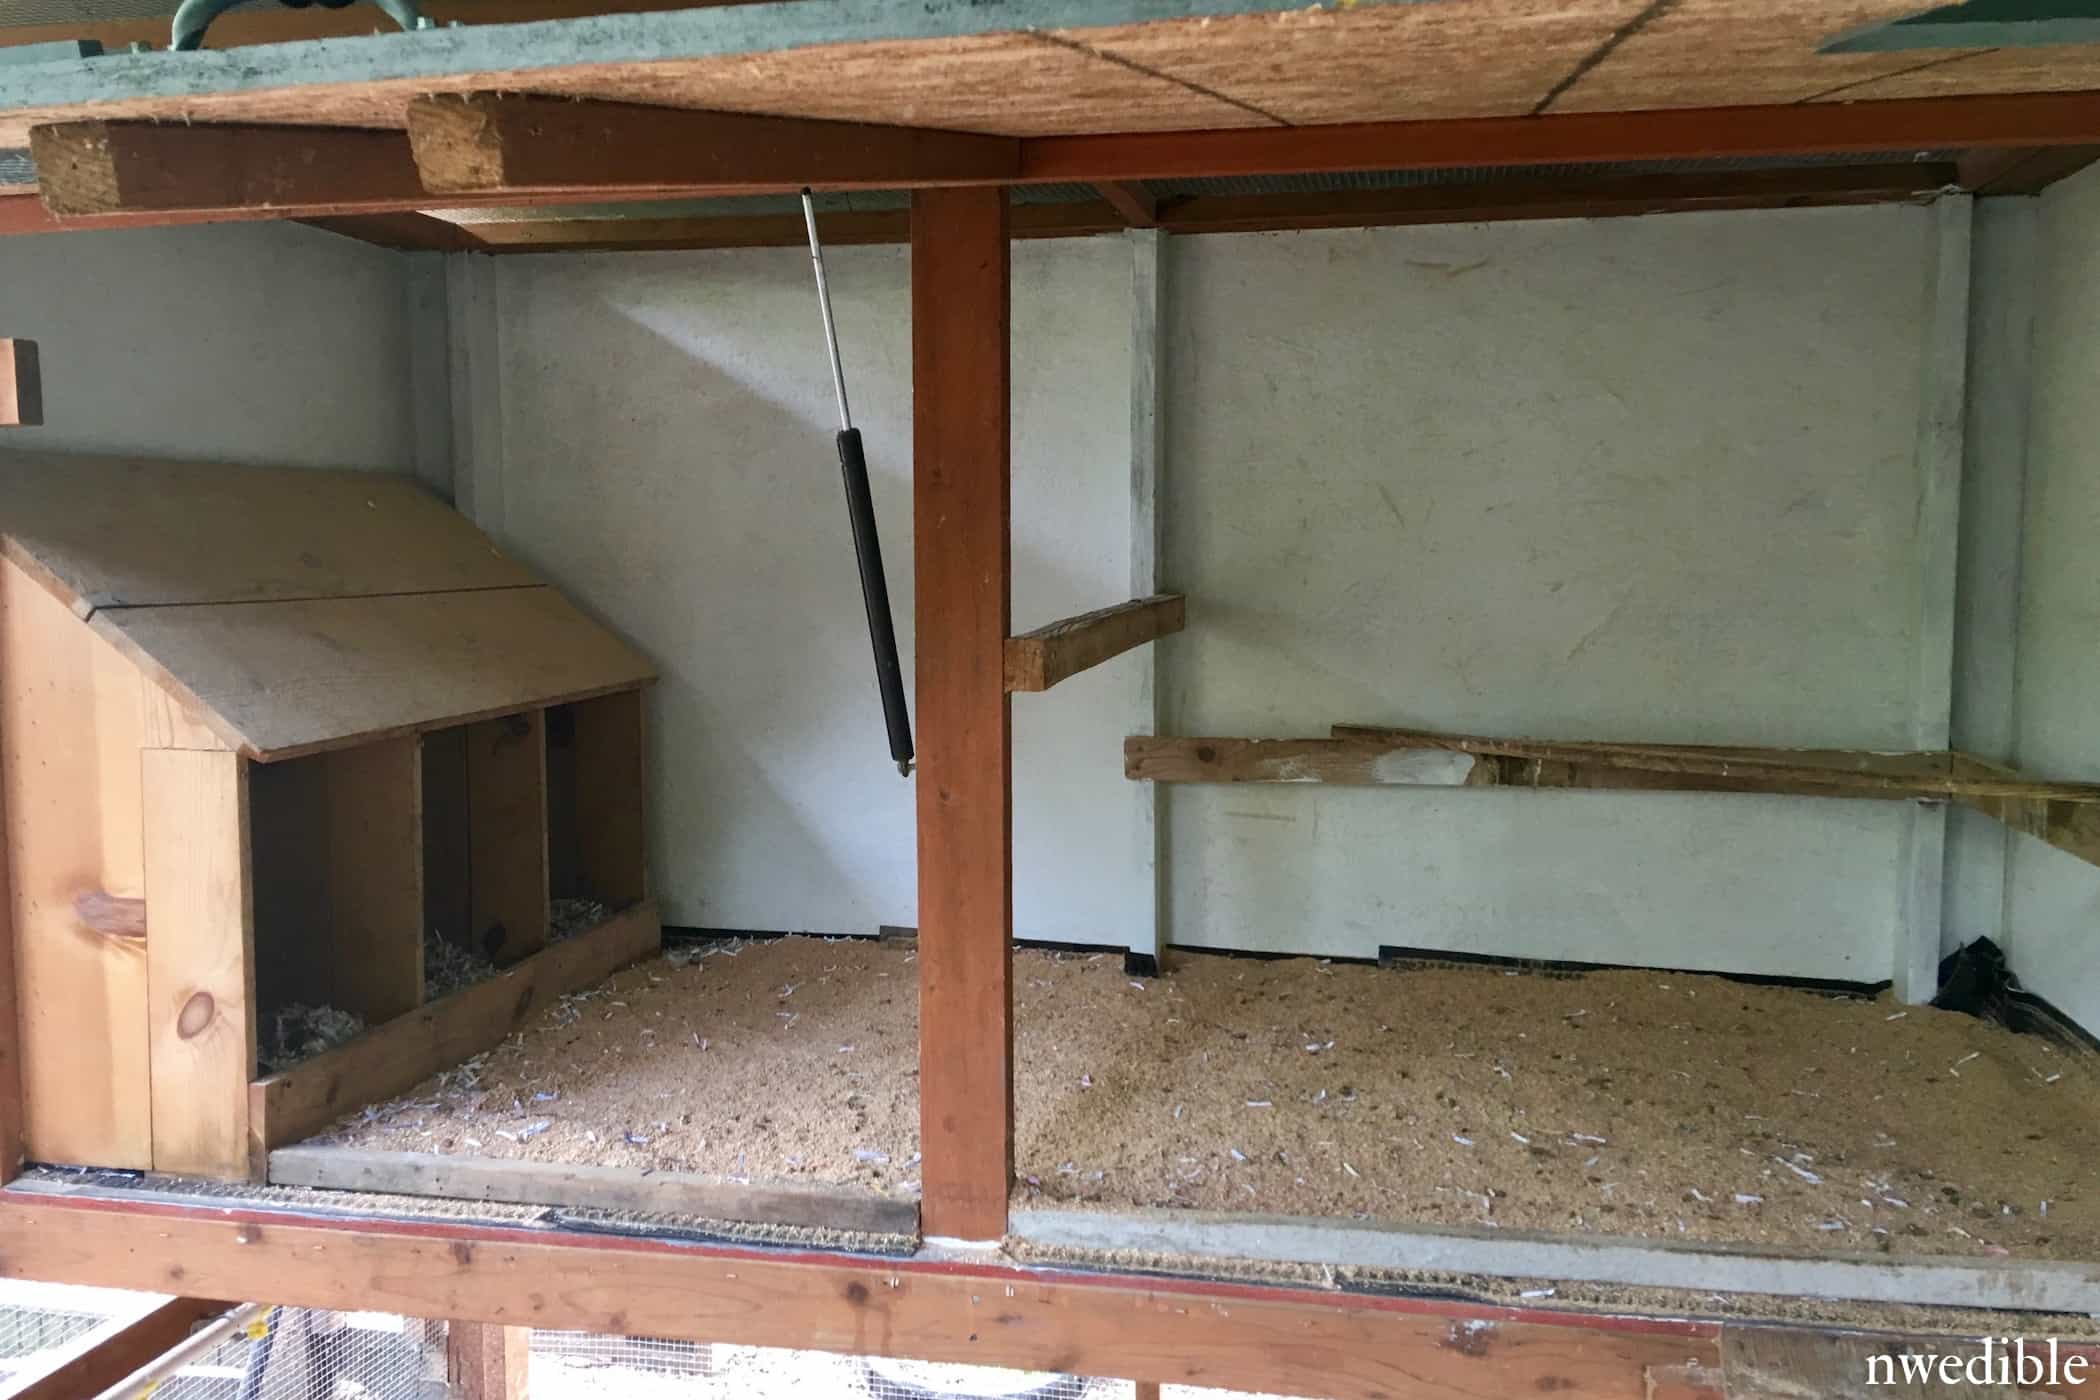 11 chicken coop features i ll never live without - One time interior house cleaning ...